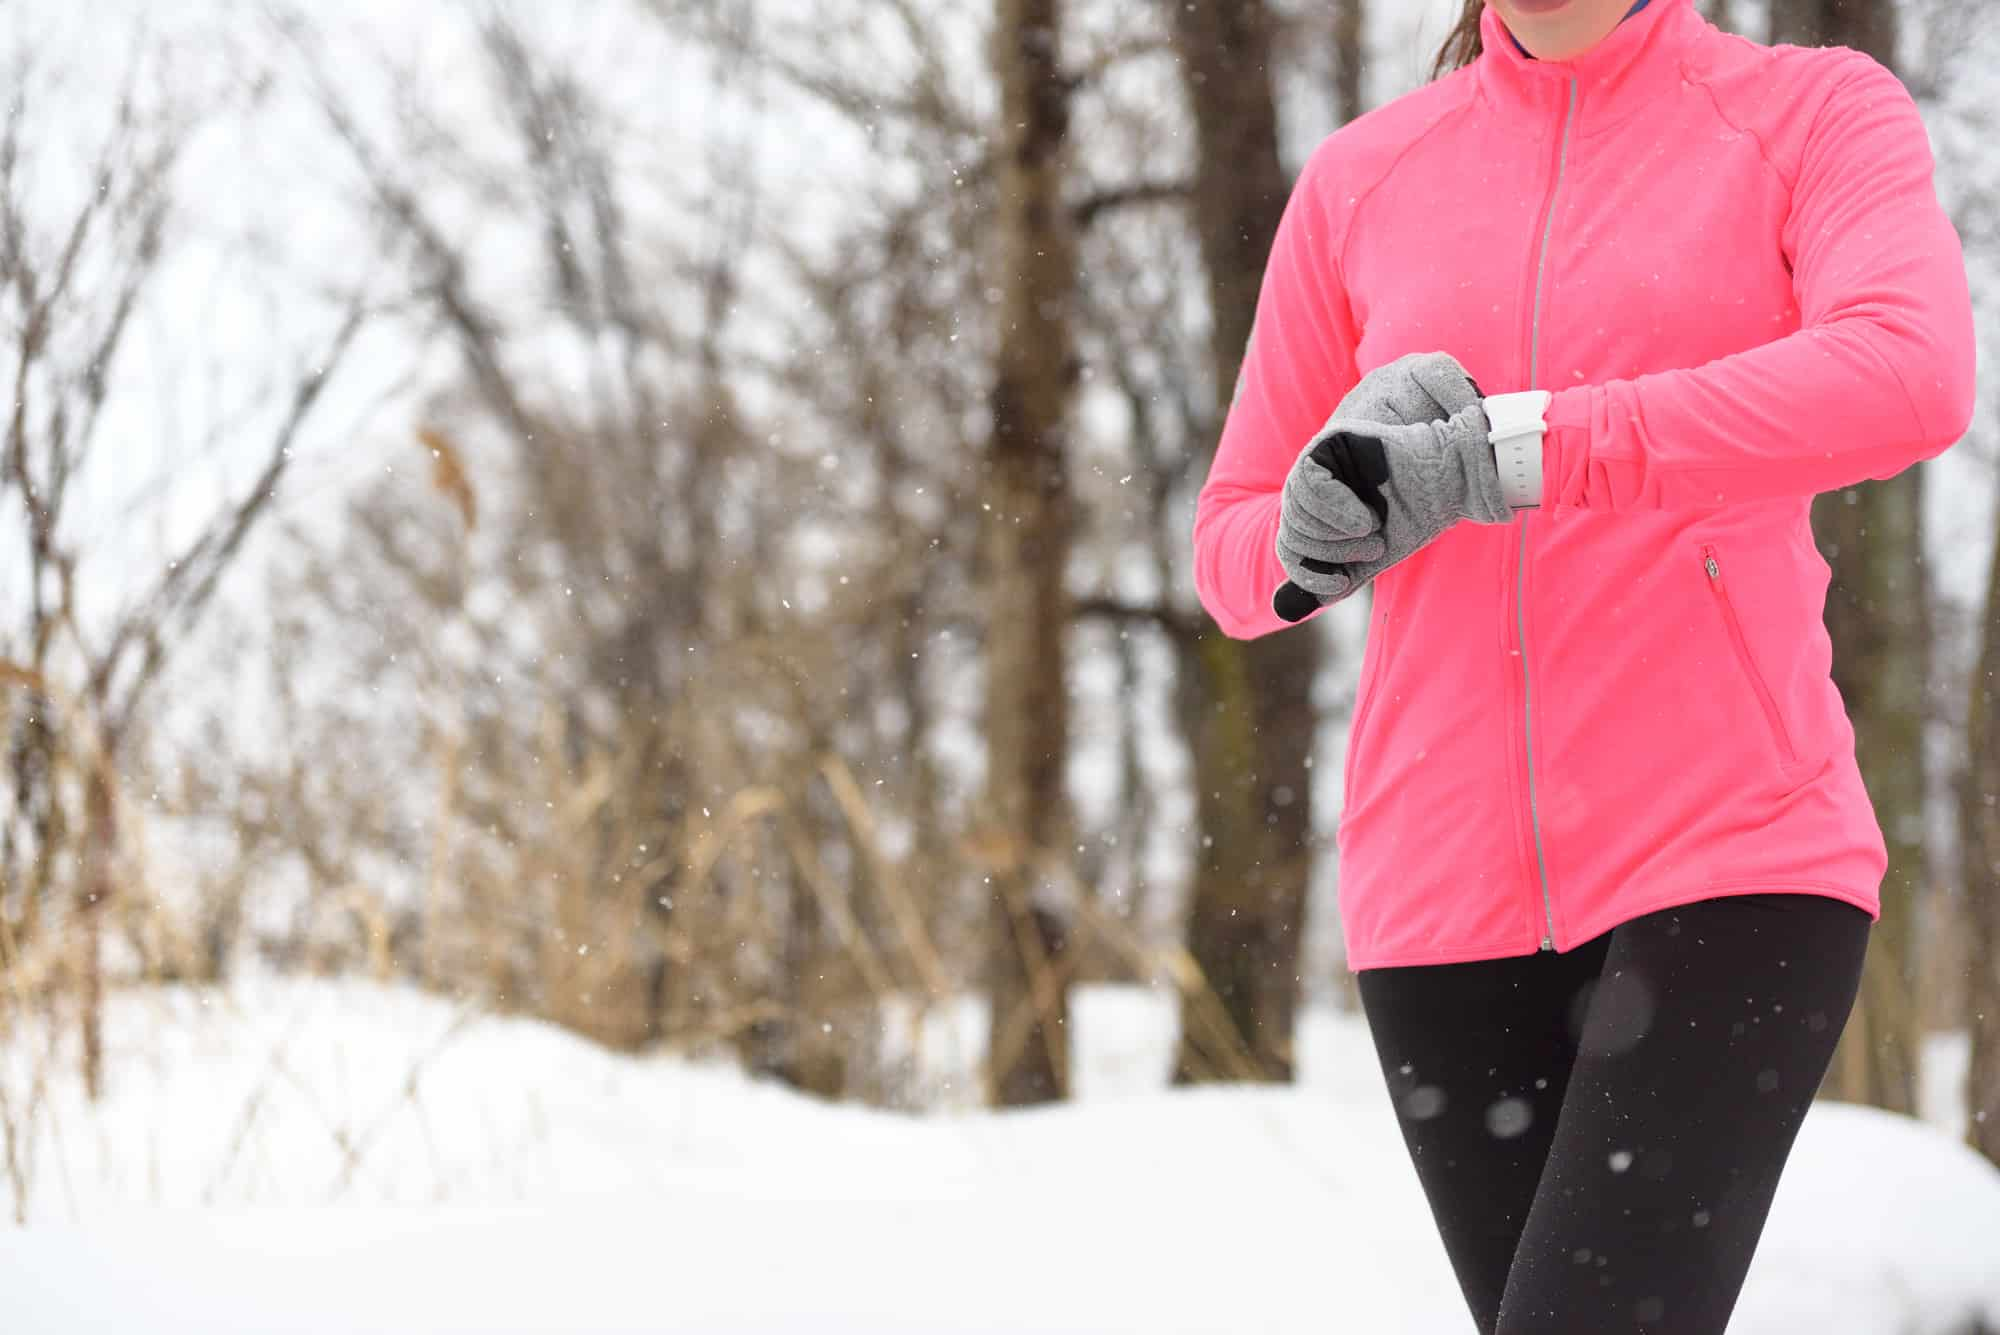 Runner using smartwatch jogging in snow trail in forest. winter weather closeup. Female athlete checking her cardio with a heart rate monitor during workout outside in running park.